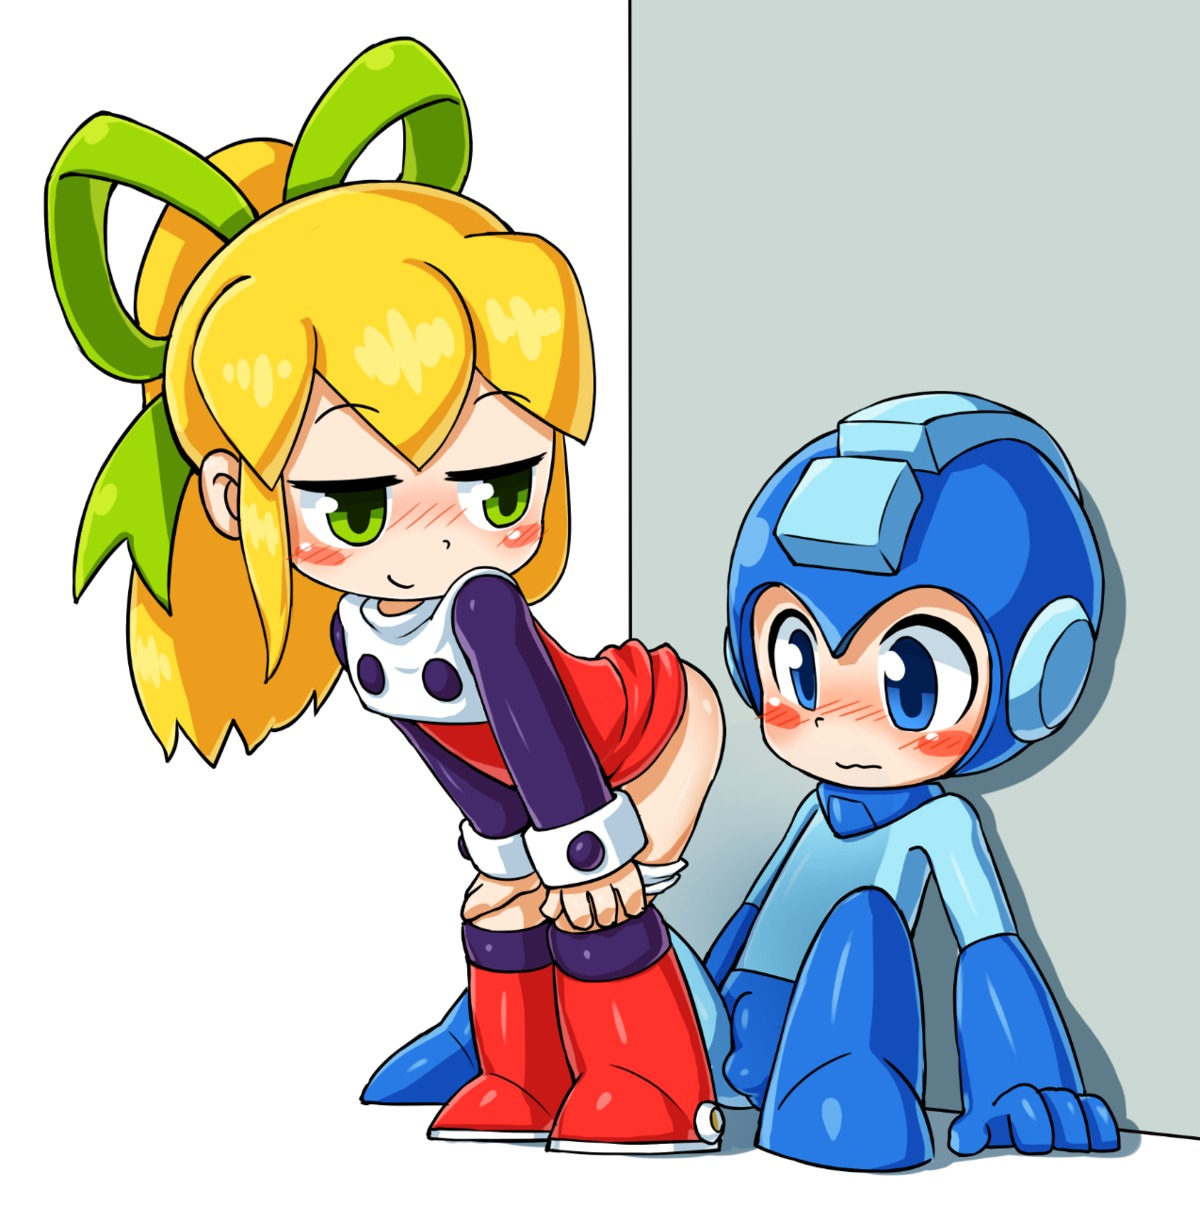 1boy 1girl arm_support blonde_hair blue_eyes blue_helmet blush blush_stickers boots bow brother_and_sister bulge choreuny_hyamkeu closed_mouth dress dress_lift erection_under_clothes eyebrows_visible_through_hair full_body green_bow hair_bow half-closed_eyes hands_on_own_knees helmet hetero jitome leaning_back long_hair long_sleeves pantsu pantsu_pull ponytail red_dress red_footwear rockman rockman_(character) rockman_(classic) roll shota siblings sitting smile standing underwear wavy_mouth white_background